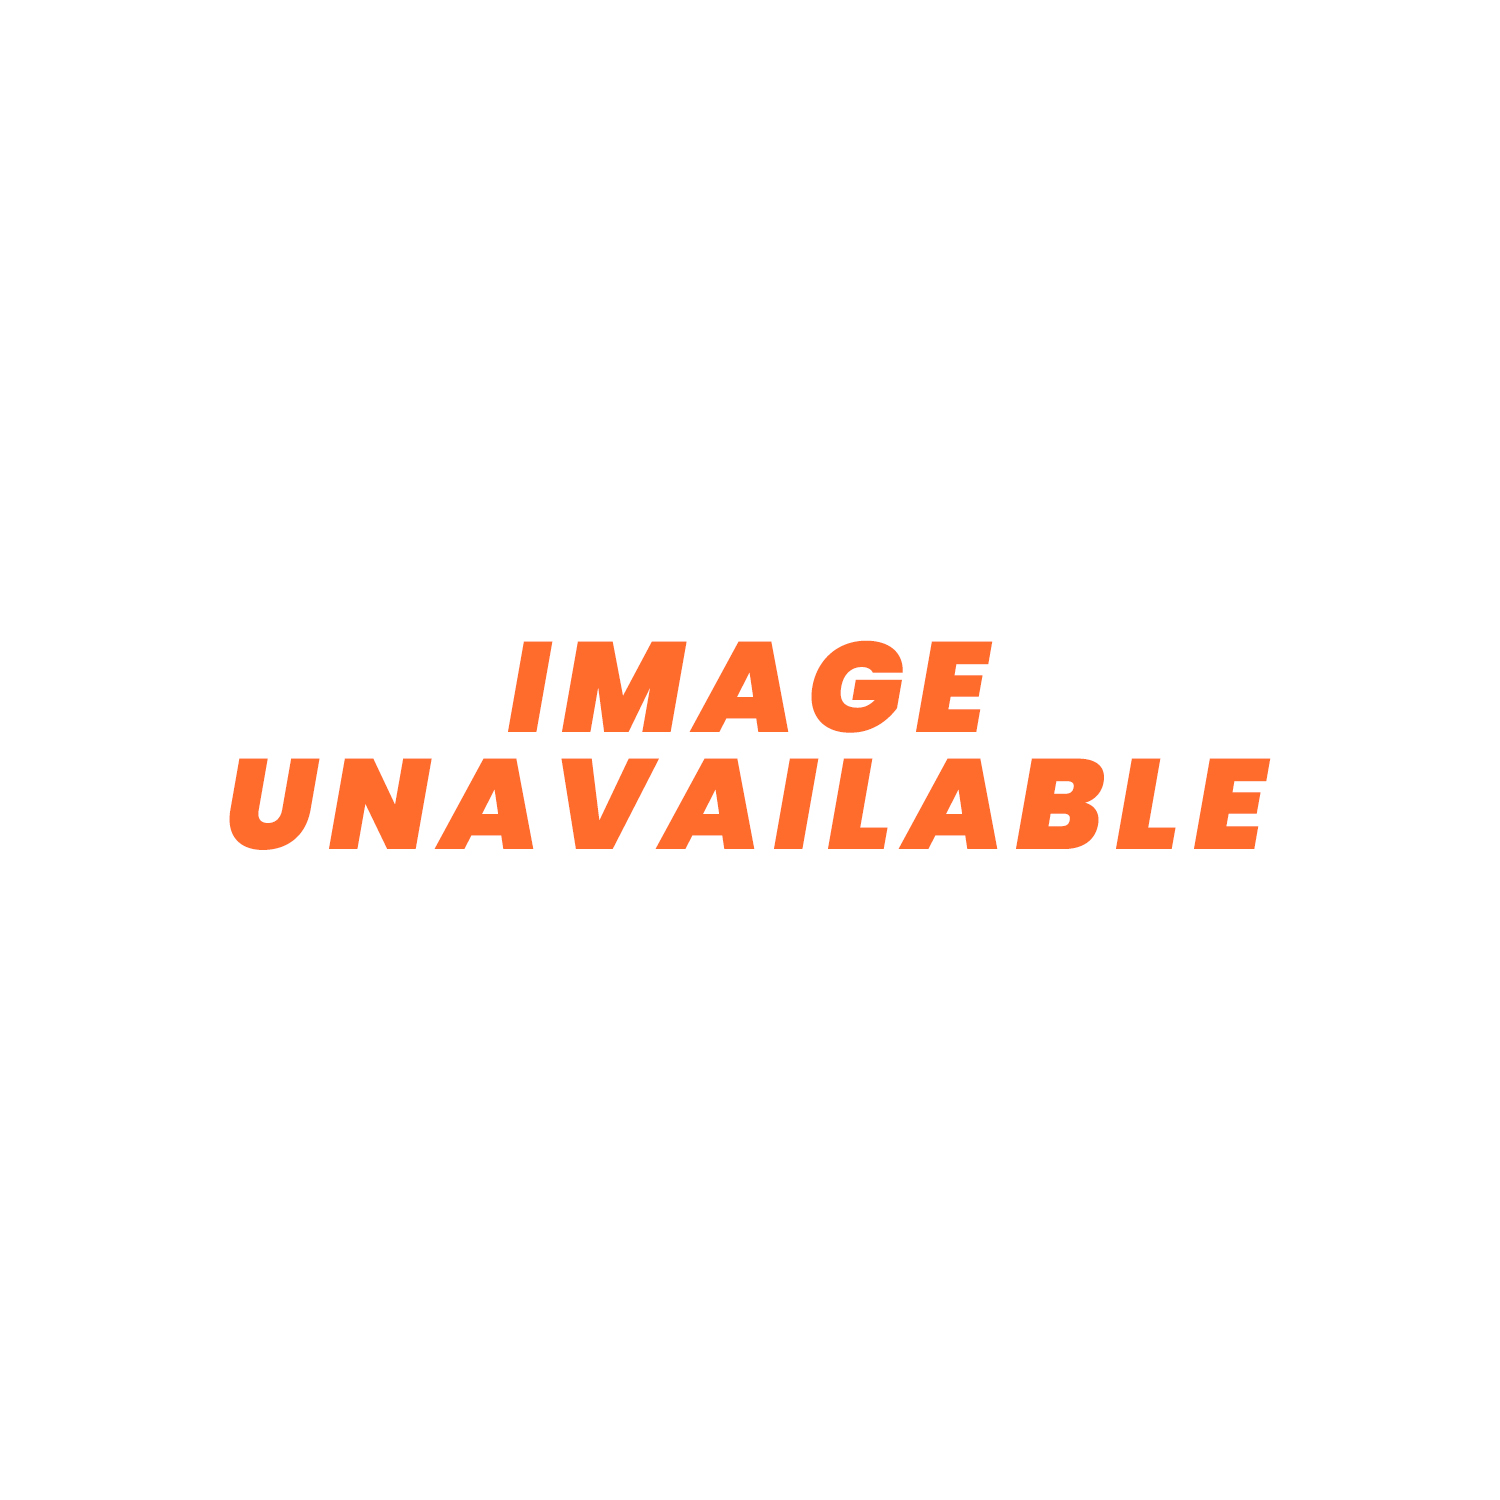 Centrifugal Supercharger Design: Centrifugal Blower